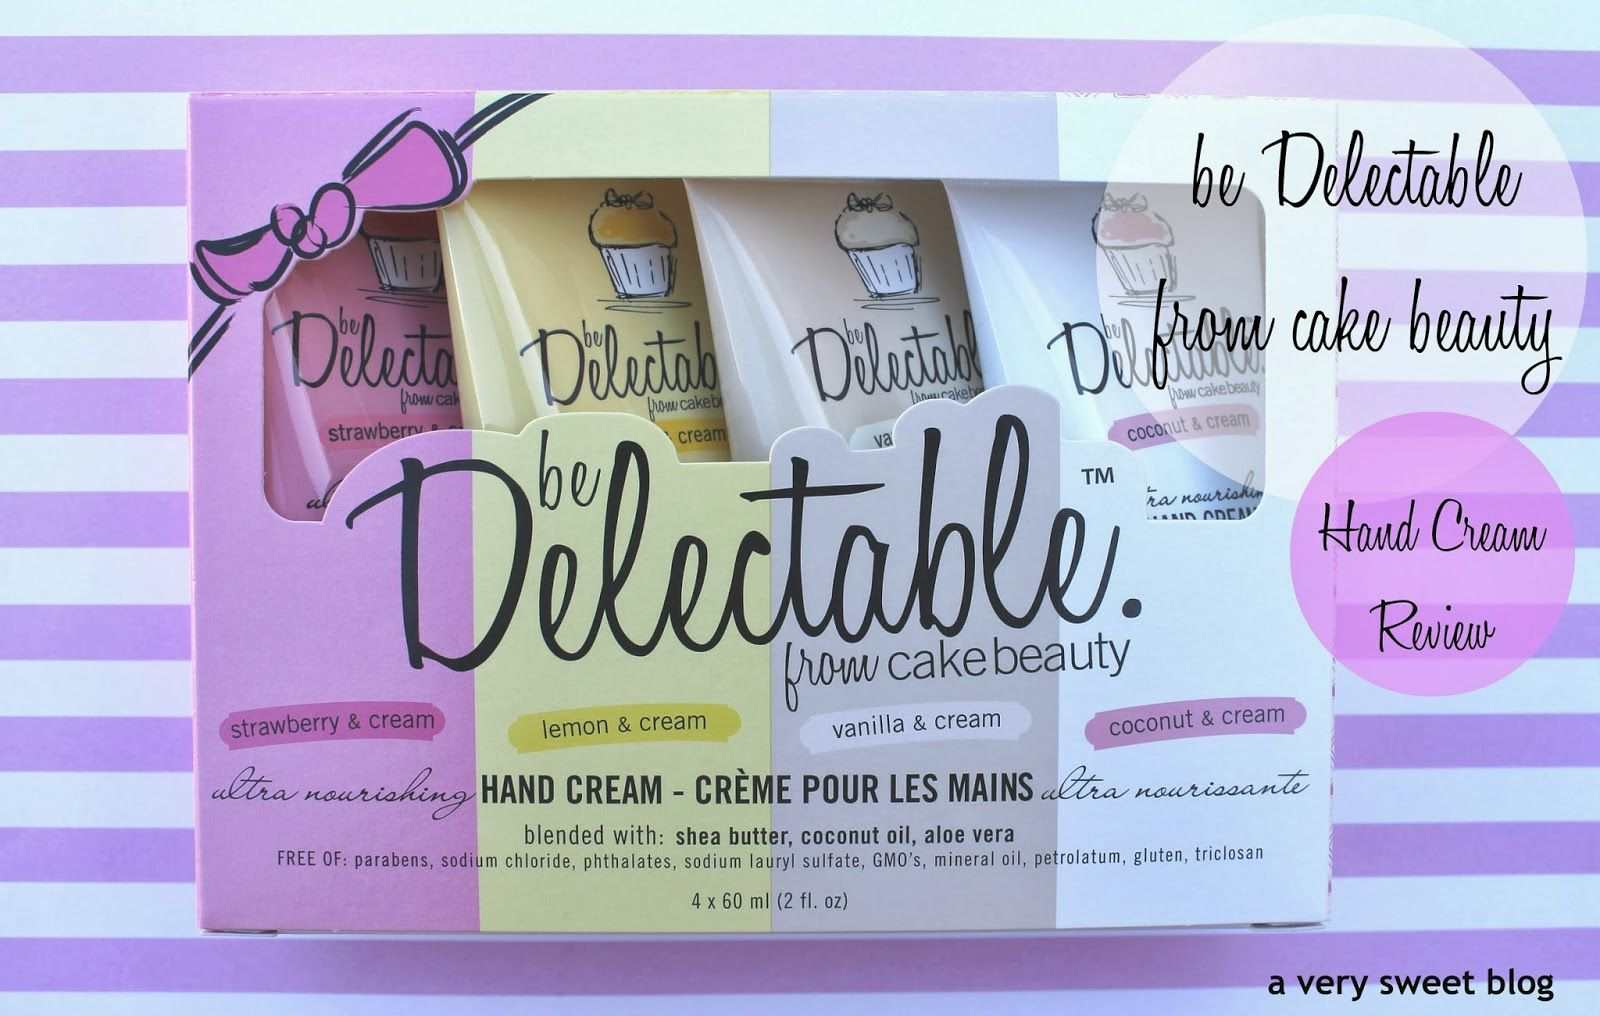 A Very Sweet Blog Be Delectable Hand Cream from Cake